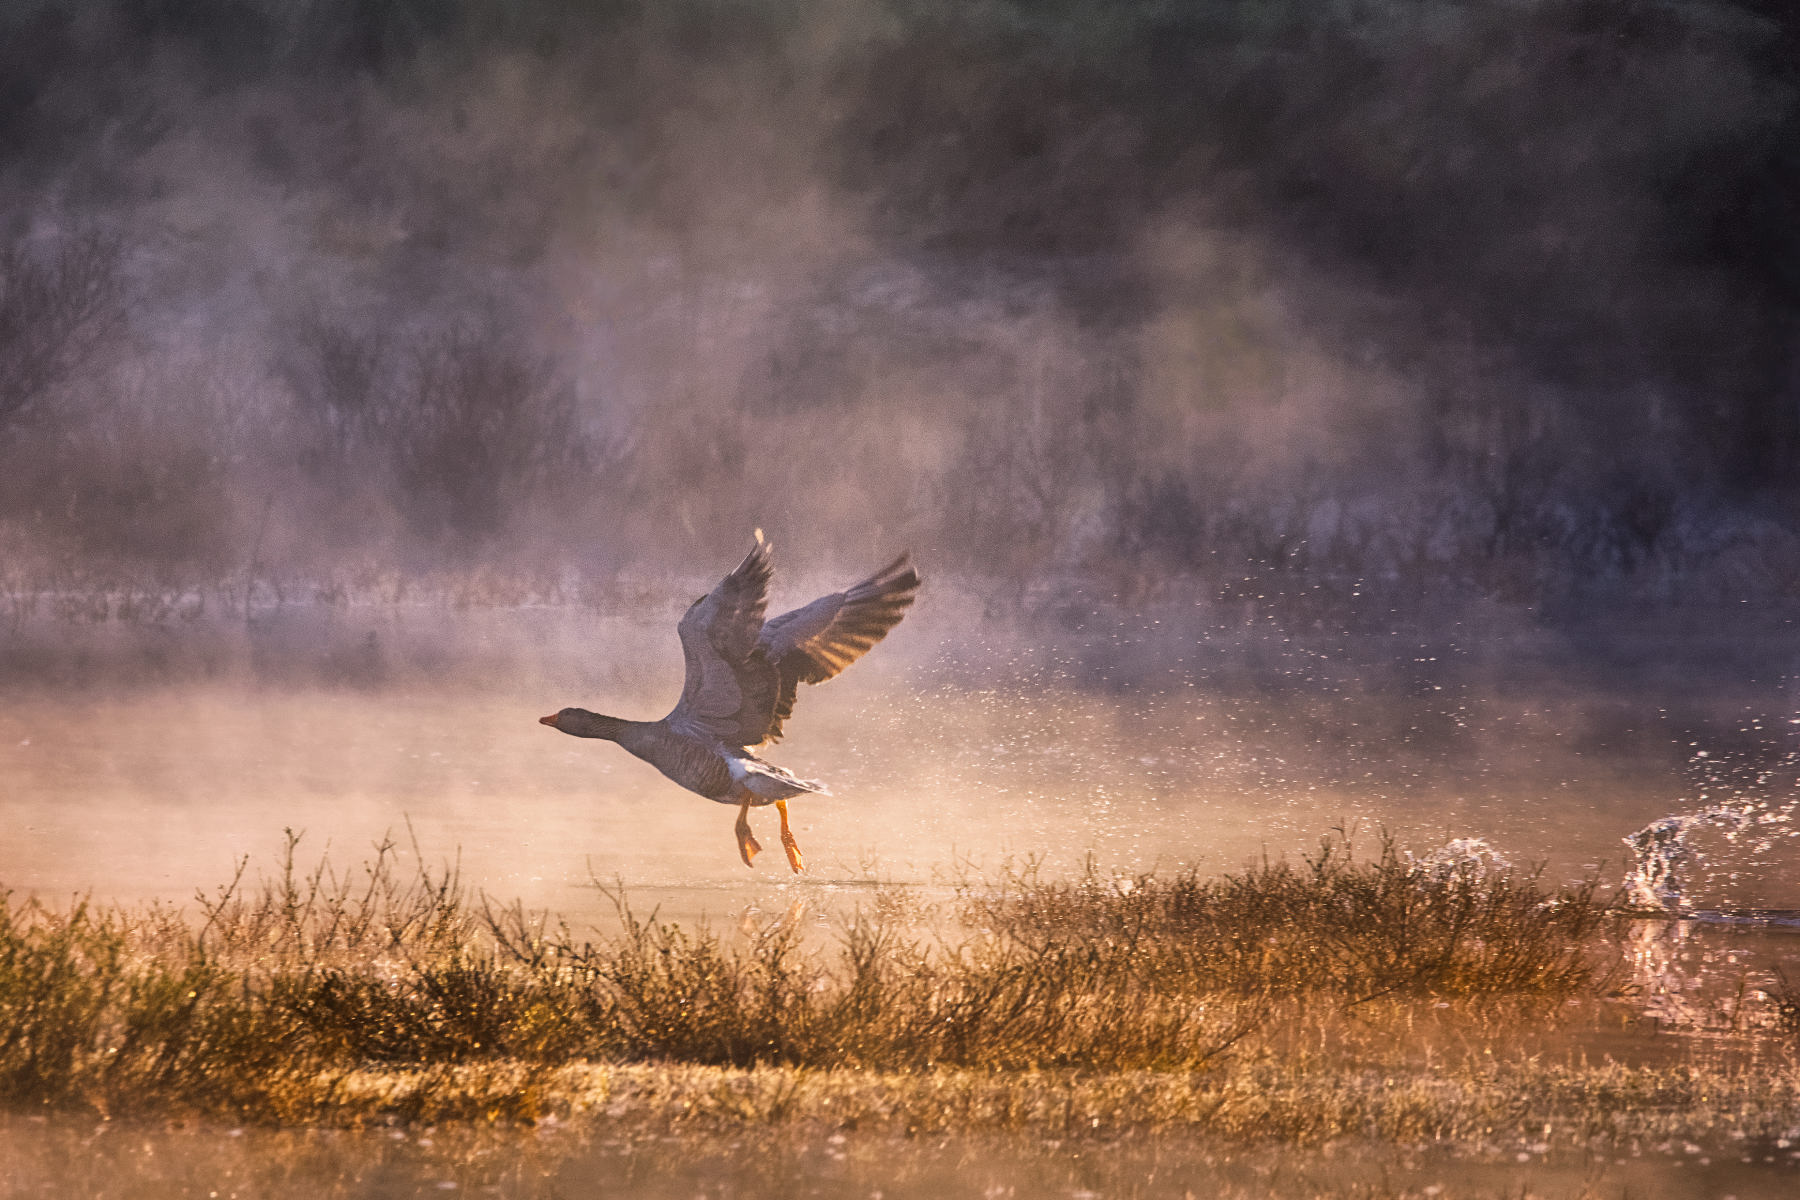 goose taking wing in misty pond at sunrise